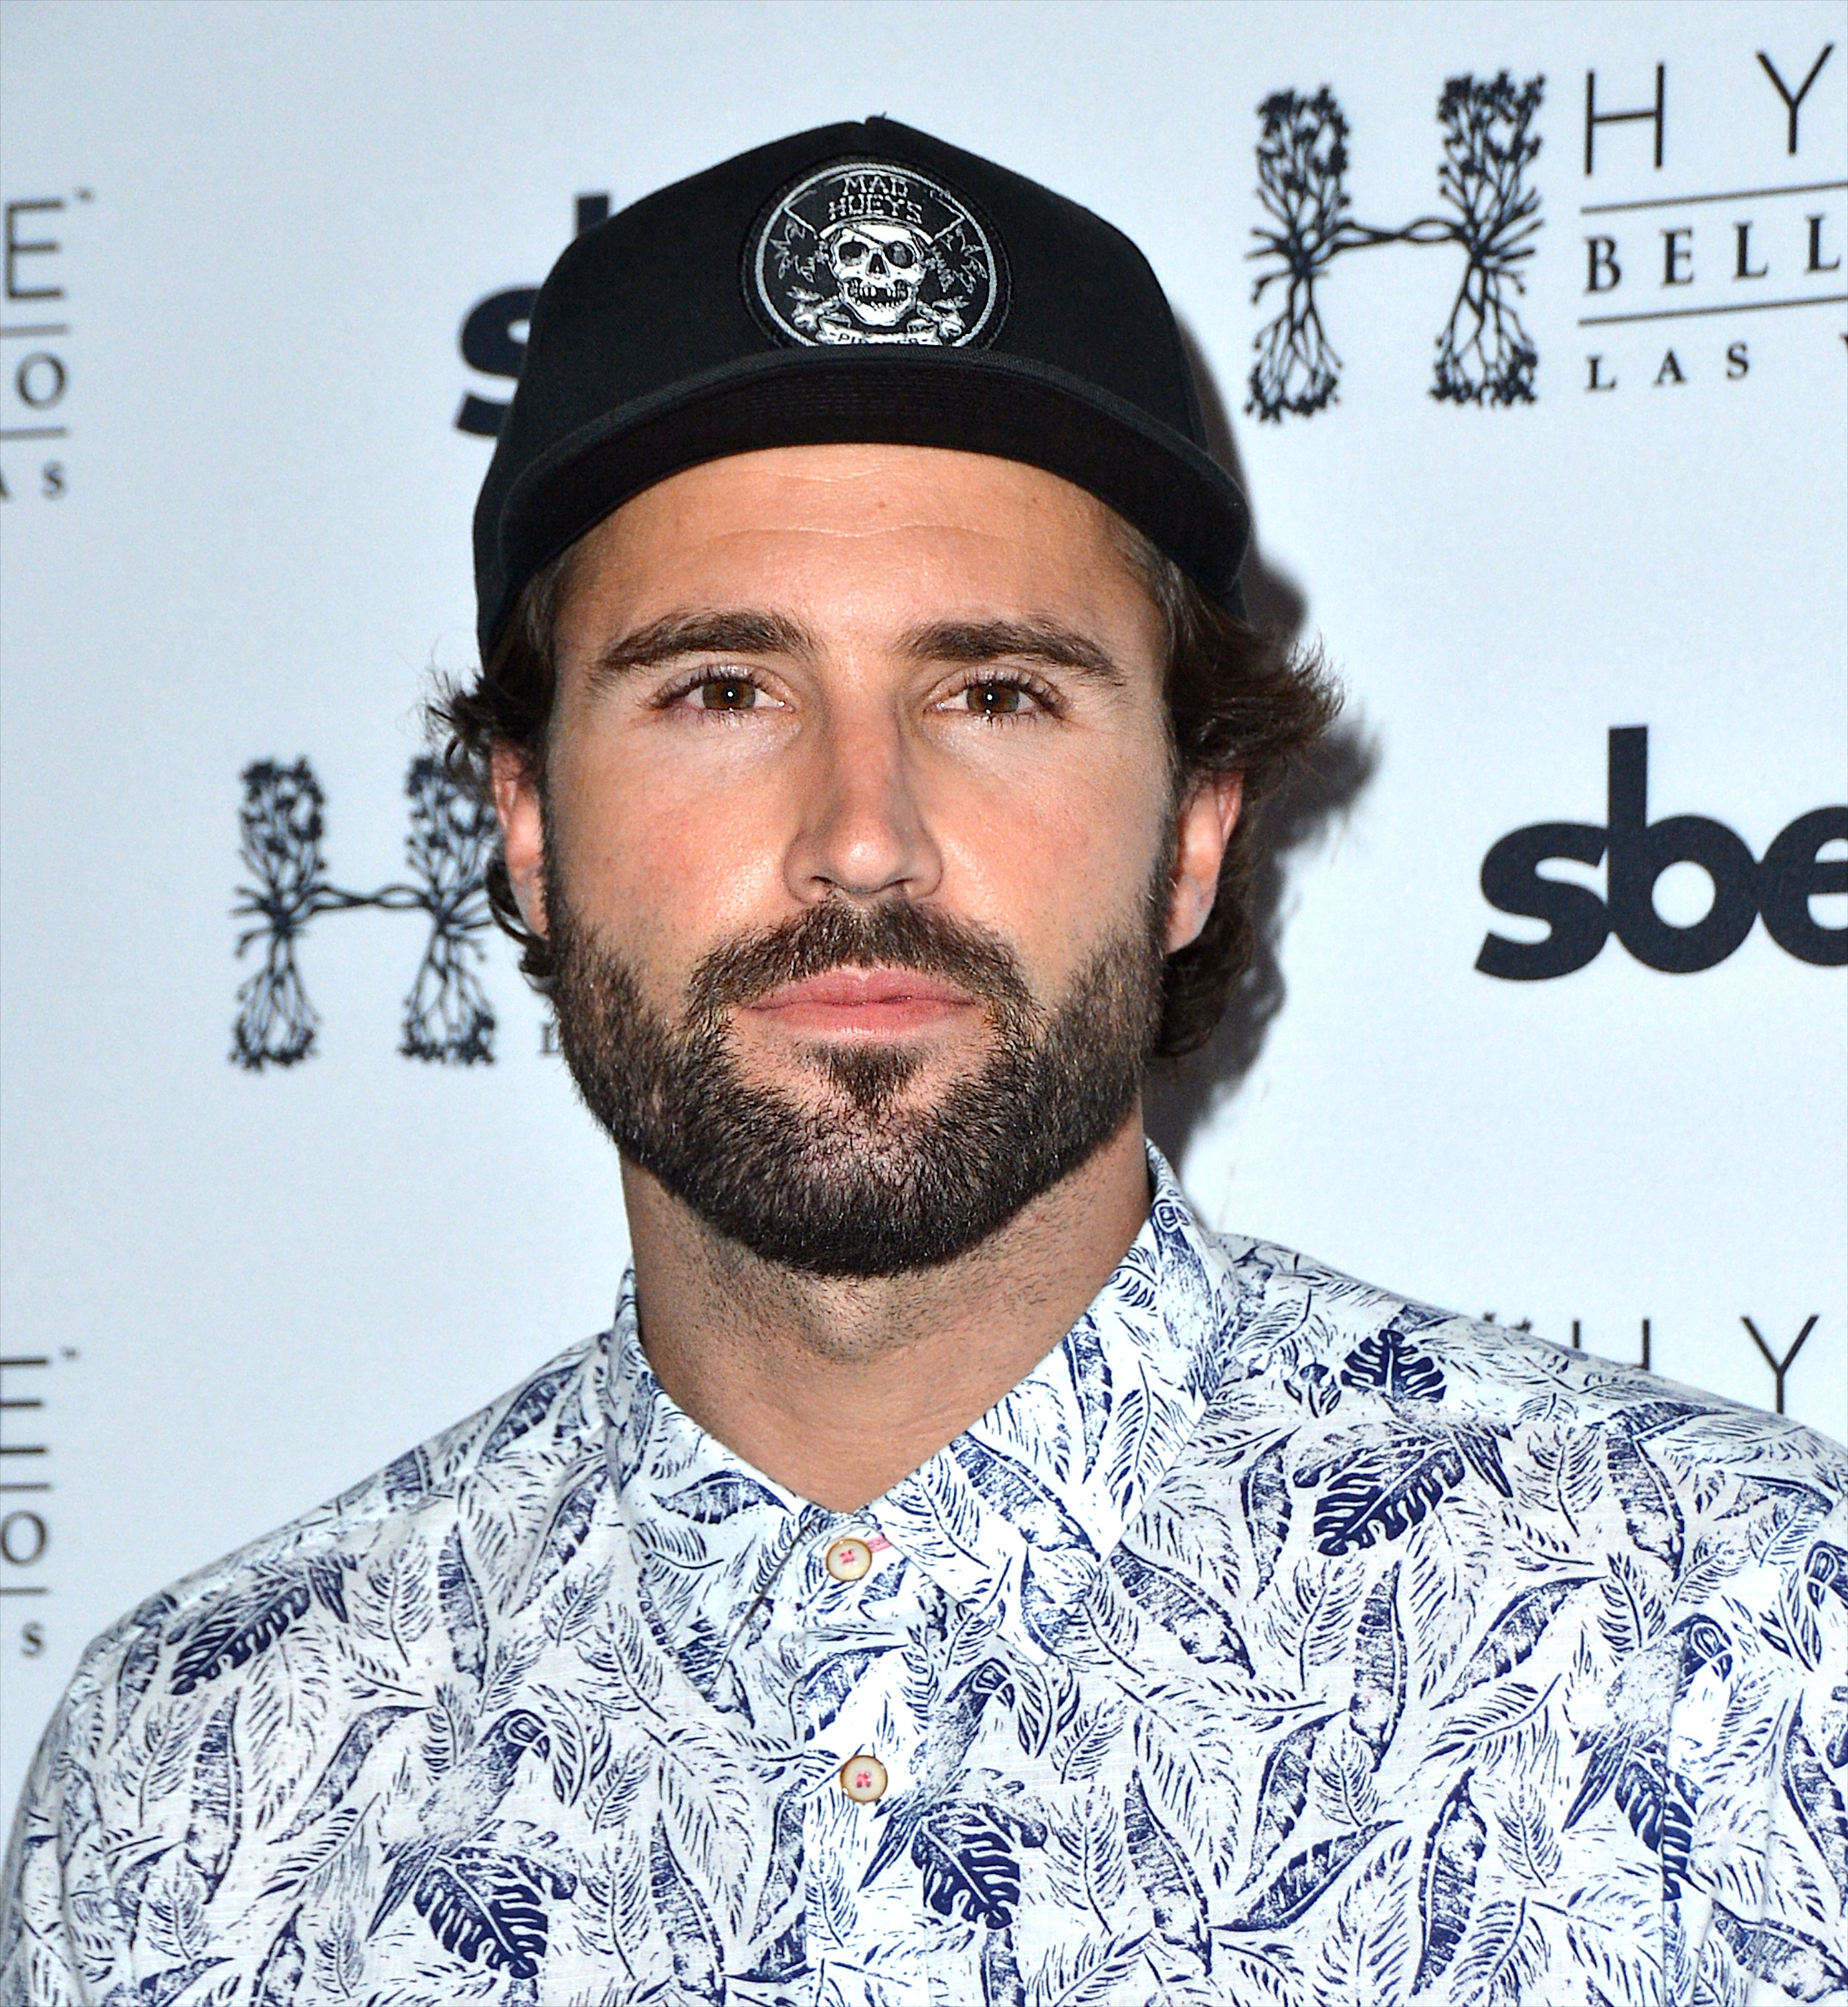 "brody-jenner-the-hills-gallery - These days, the Princes of Malibu alum is a one-woman man, marrying fashion blogger Kaitlynn Carter in June 2018 after four years of dating. The couple will appear on the Hills reboot together, with the Keeping Up With the Kardashians alum confirming the news on Instagram in September: ""Don't call it a comeback. THE HILLS: New Beginnings coming soon to @mtv #haterswillsayitsphotoshopped,"" he wrote."